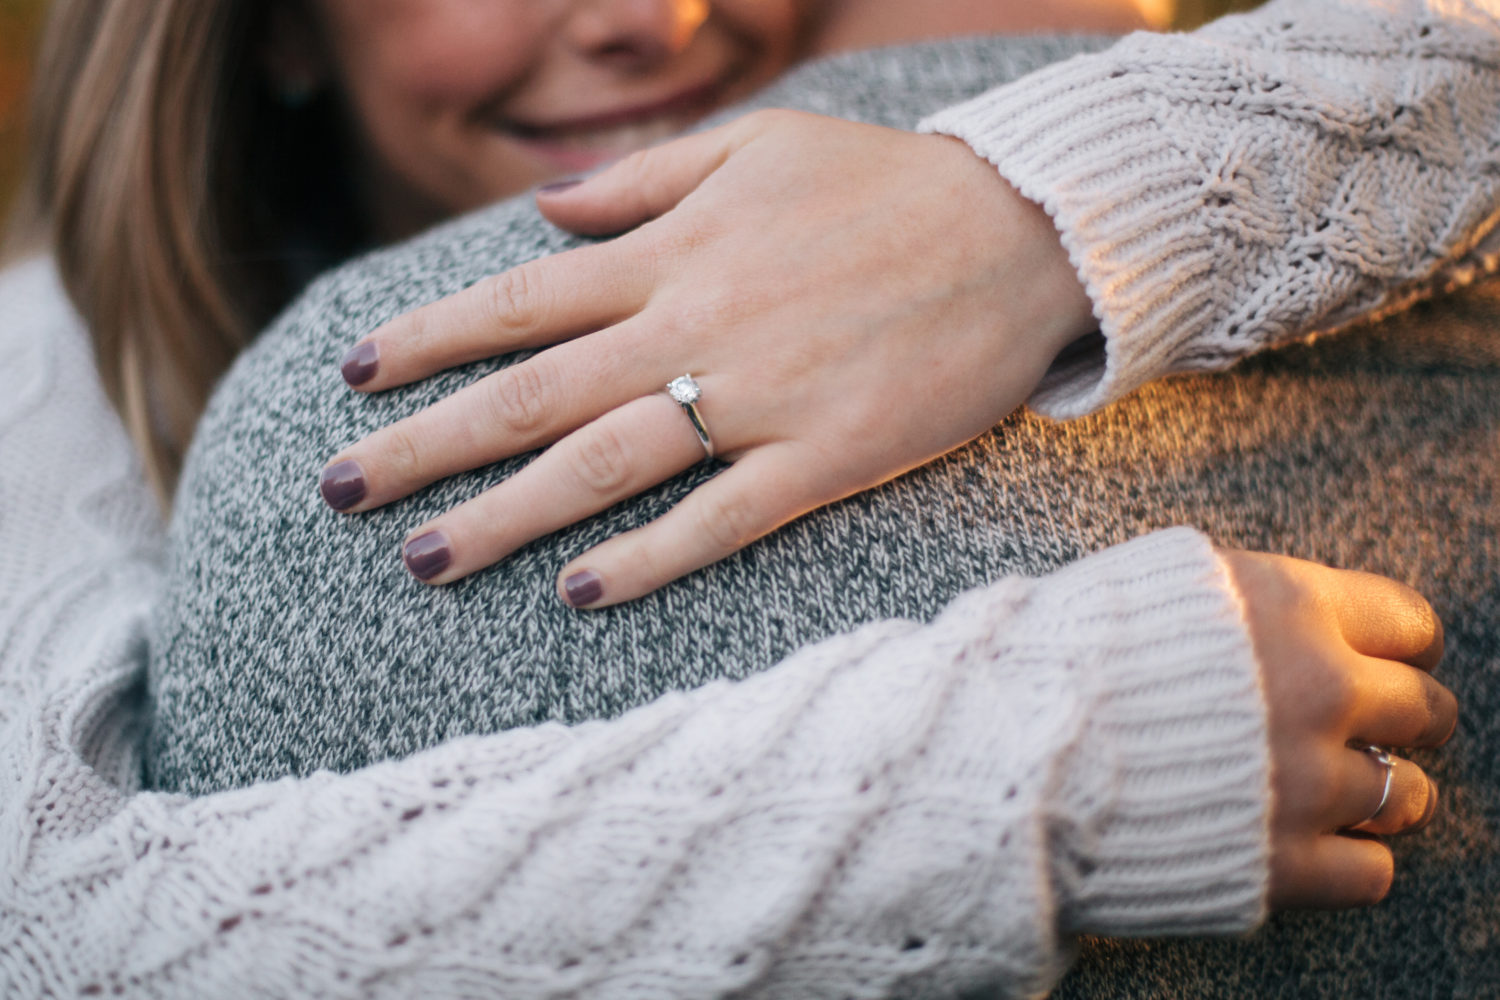 What Hand Does An Engagement Ring Go On?